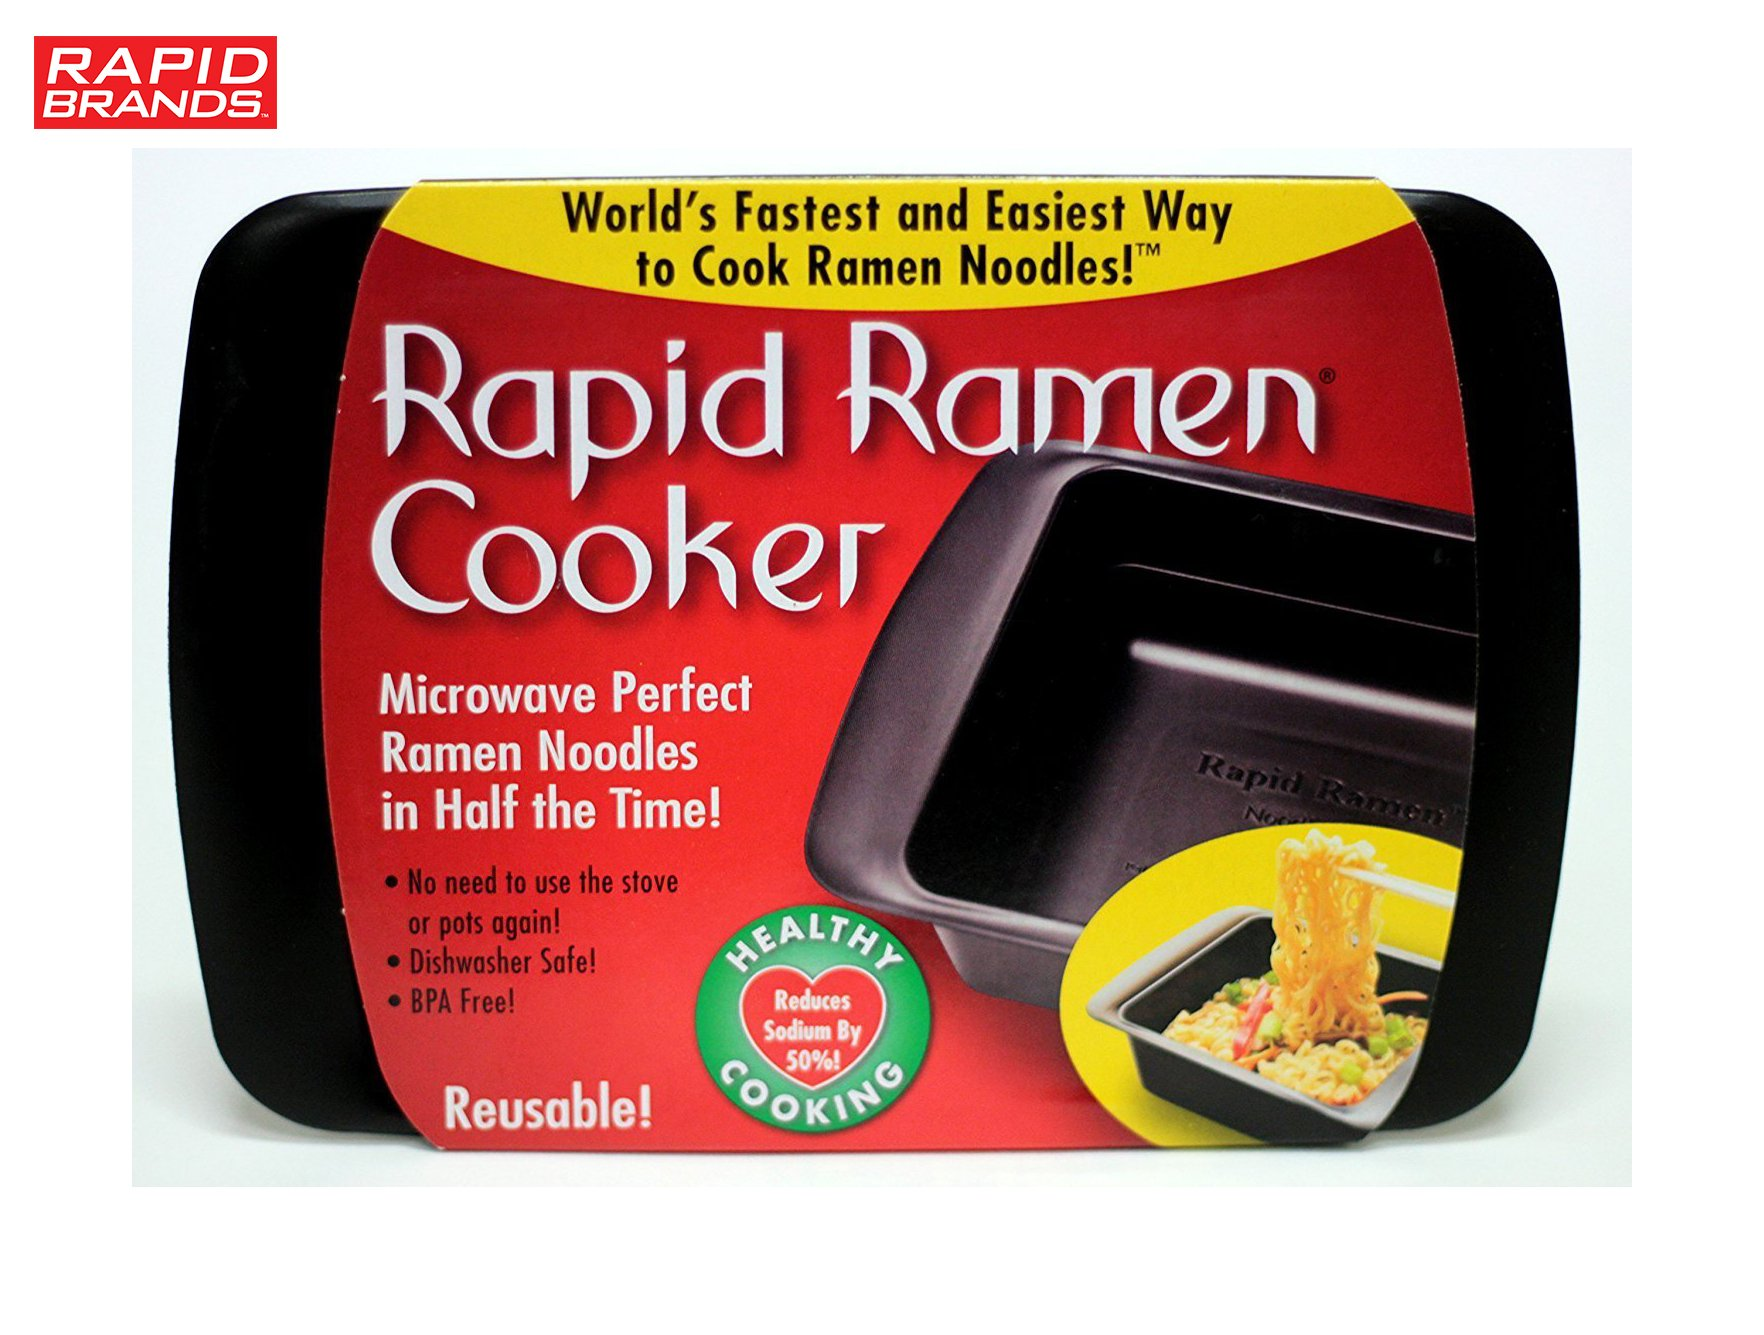 Rapid Ramen Cooker - Microwave Ramen in 3 Minutes - BPA Free and Dishwasher Safe (Four Black) by Rapid Brands (Image #5)